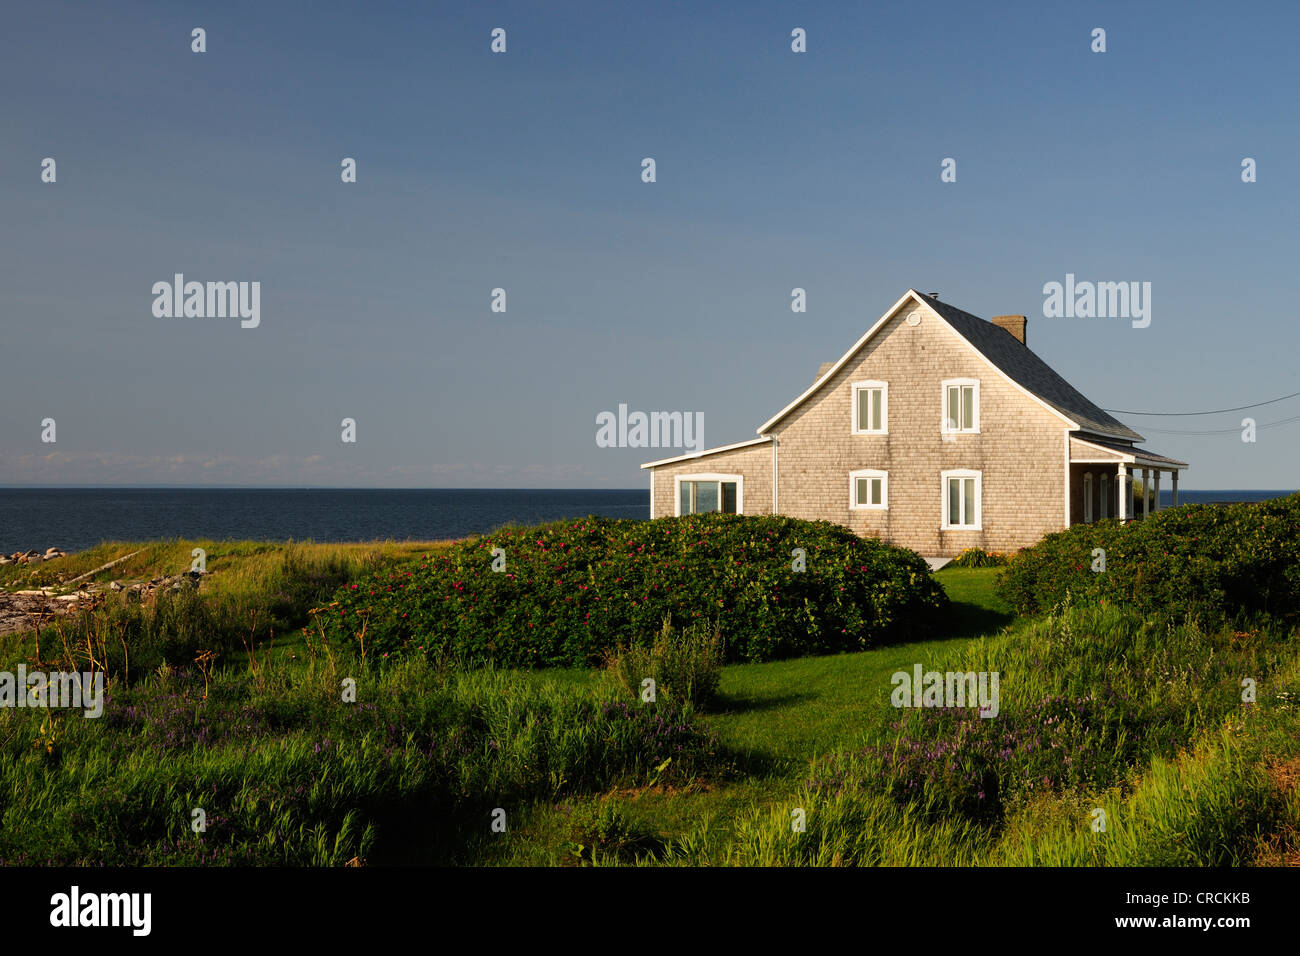 House at the St. Lawrence River, Gaspe Peninsula, Gaspésie, Quebec, Canada - Stock Image